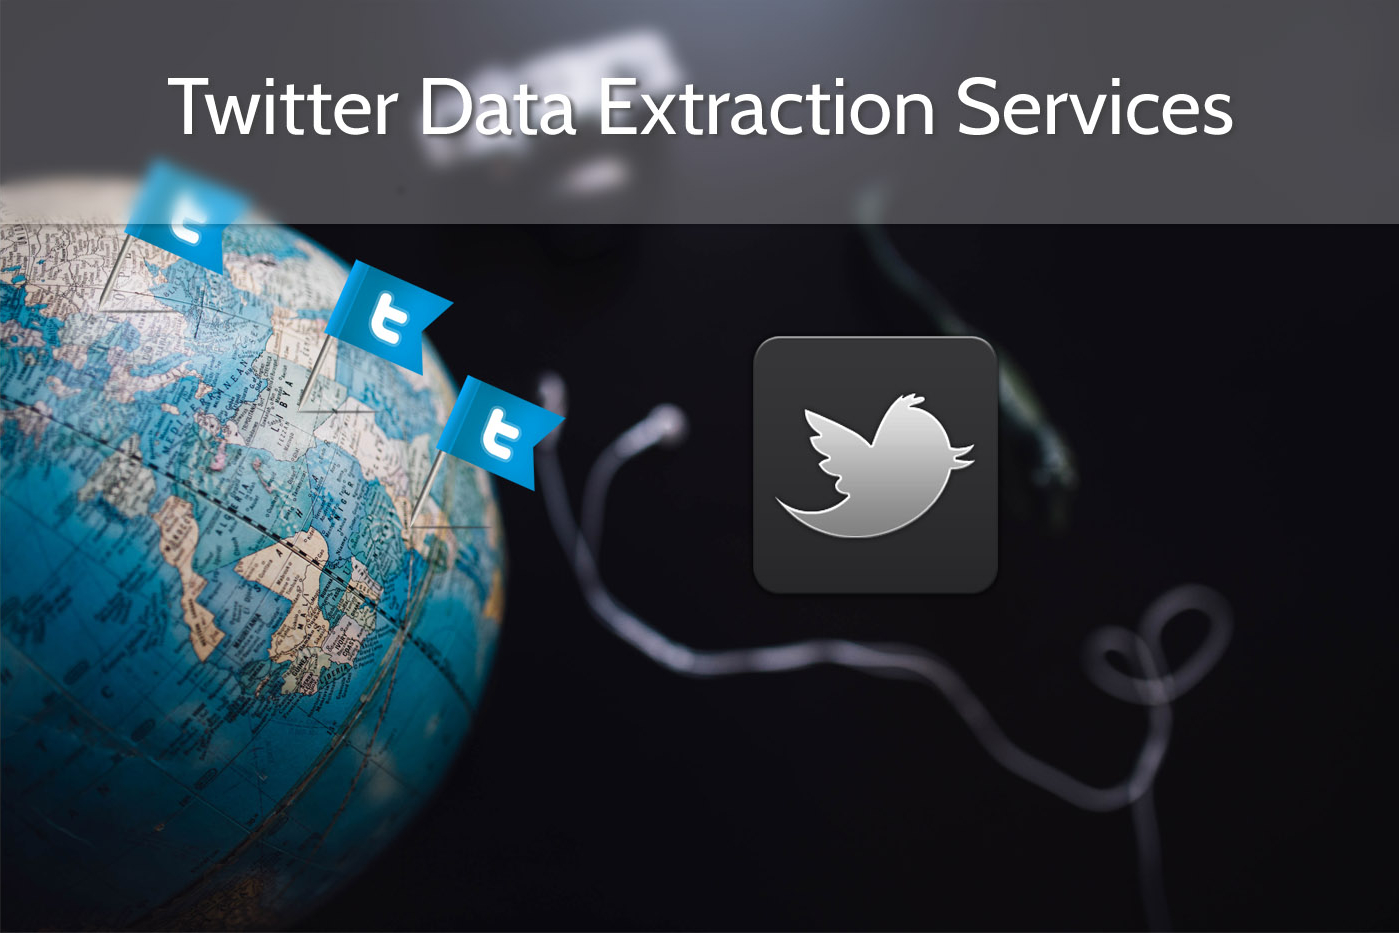 Twitter Data Extraction